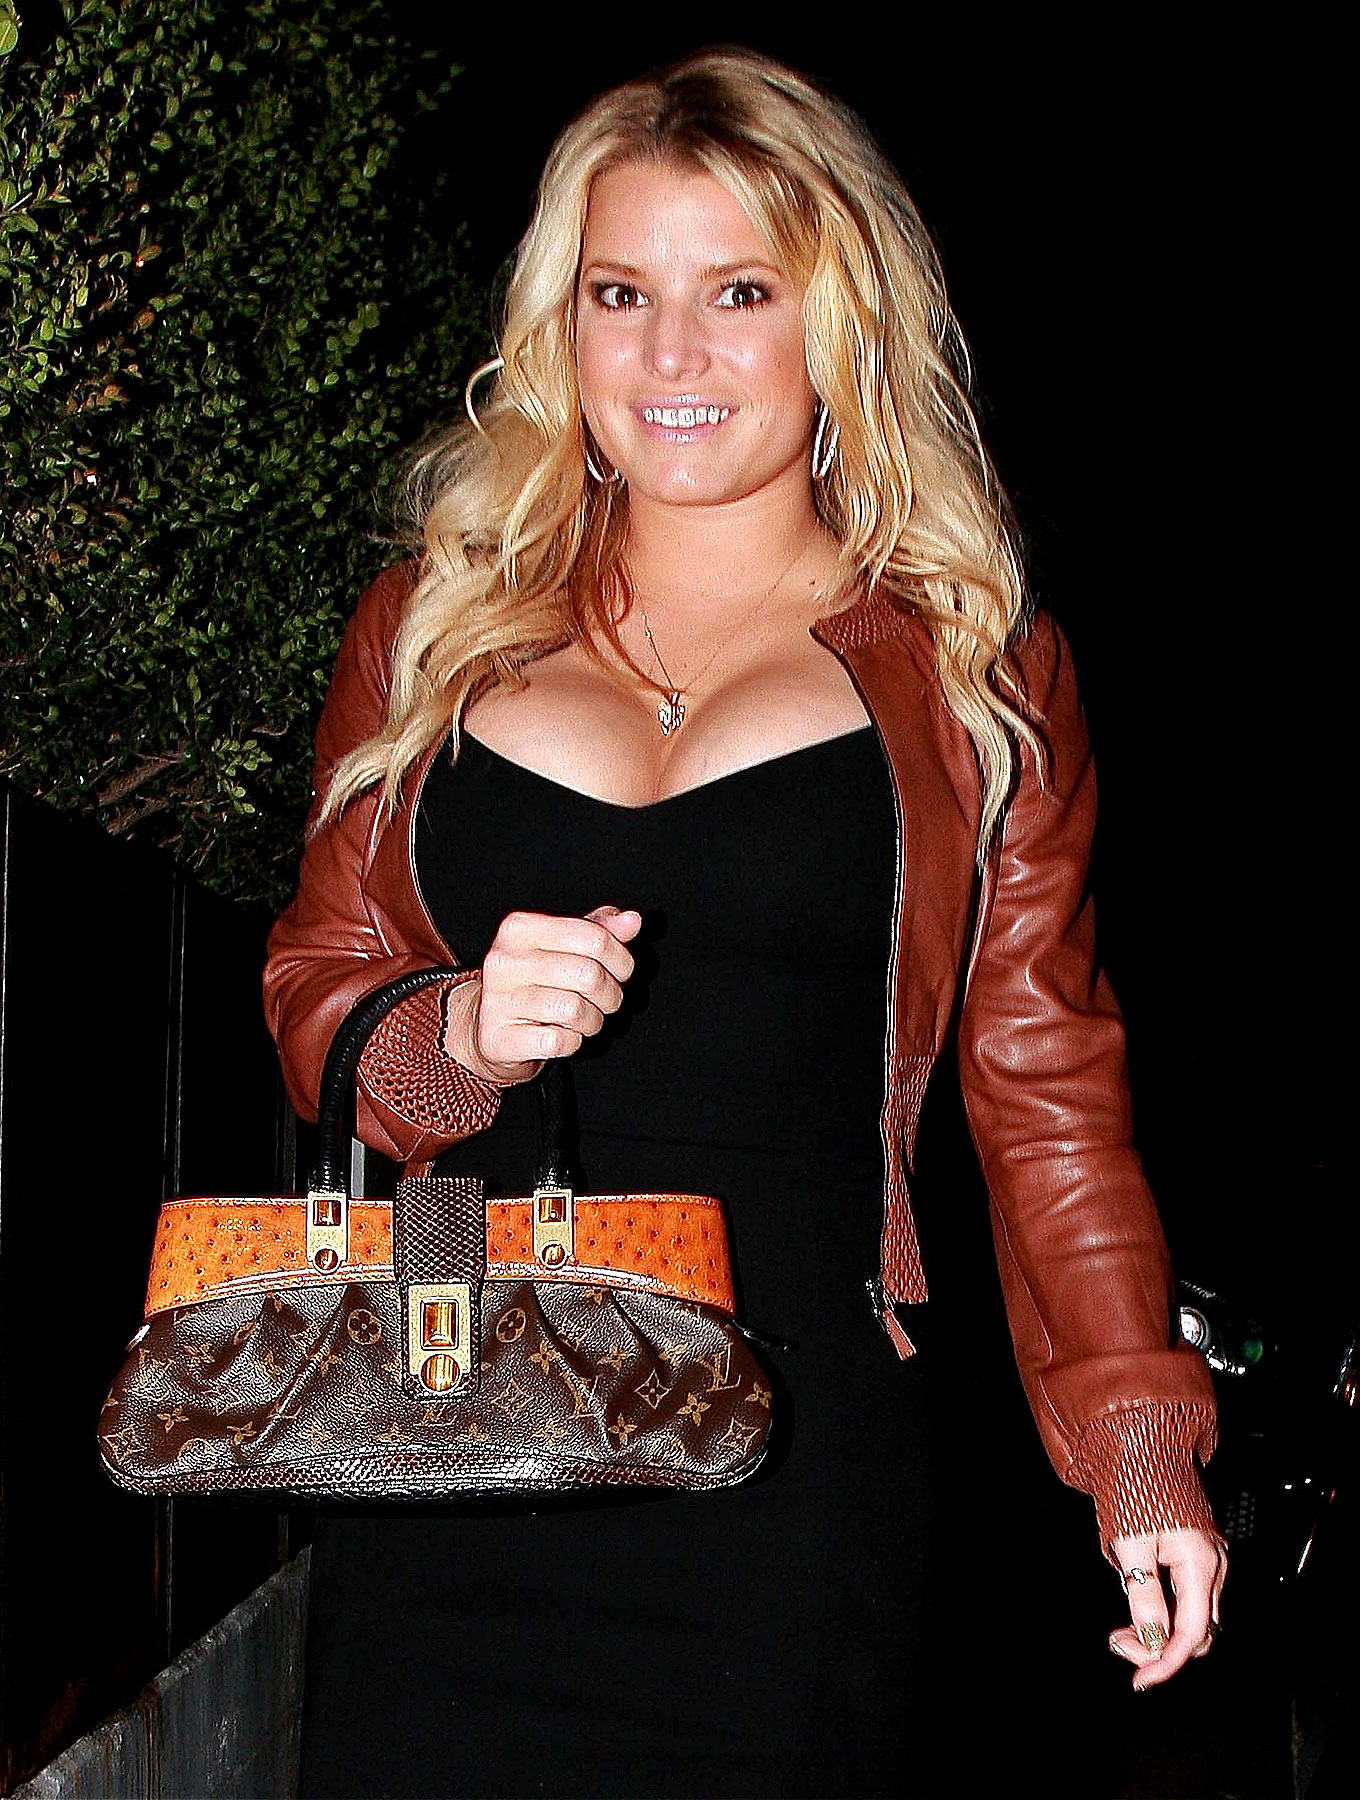 Jessica Simpson's Breasts Are Trying To Swallow Her Head (PHOTOS)